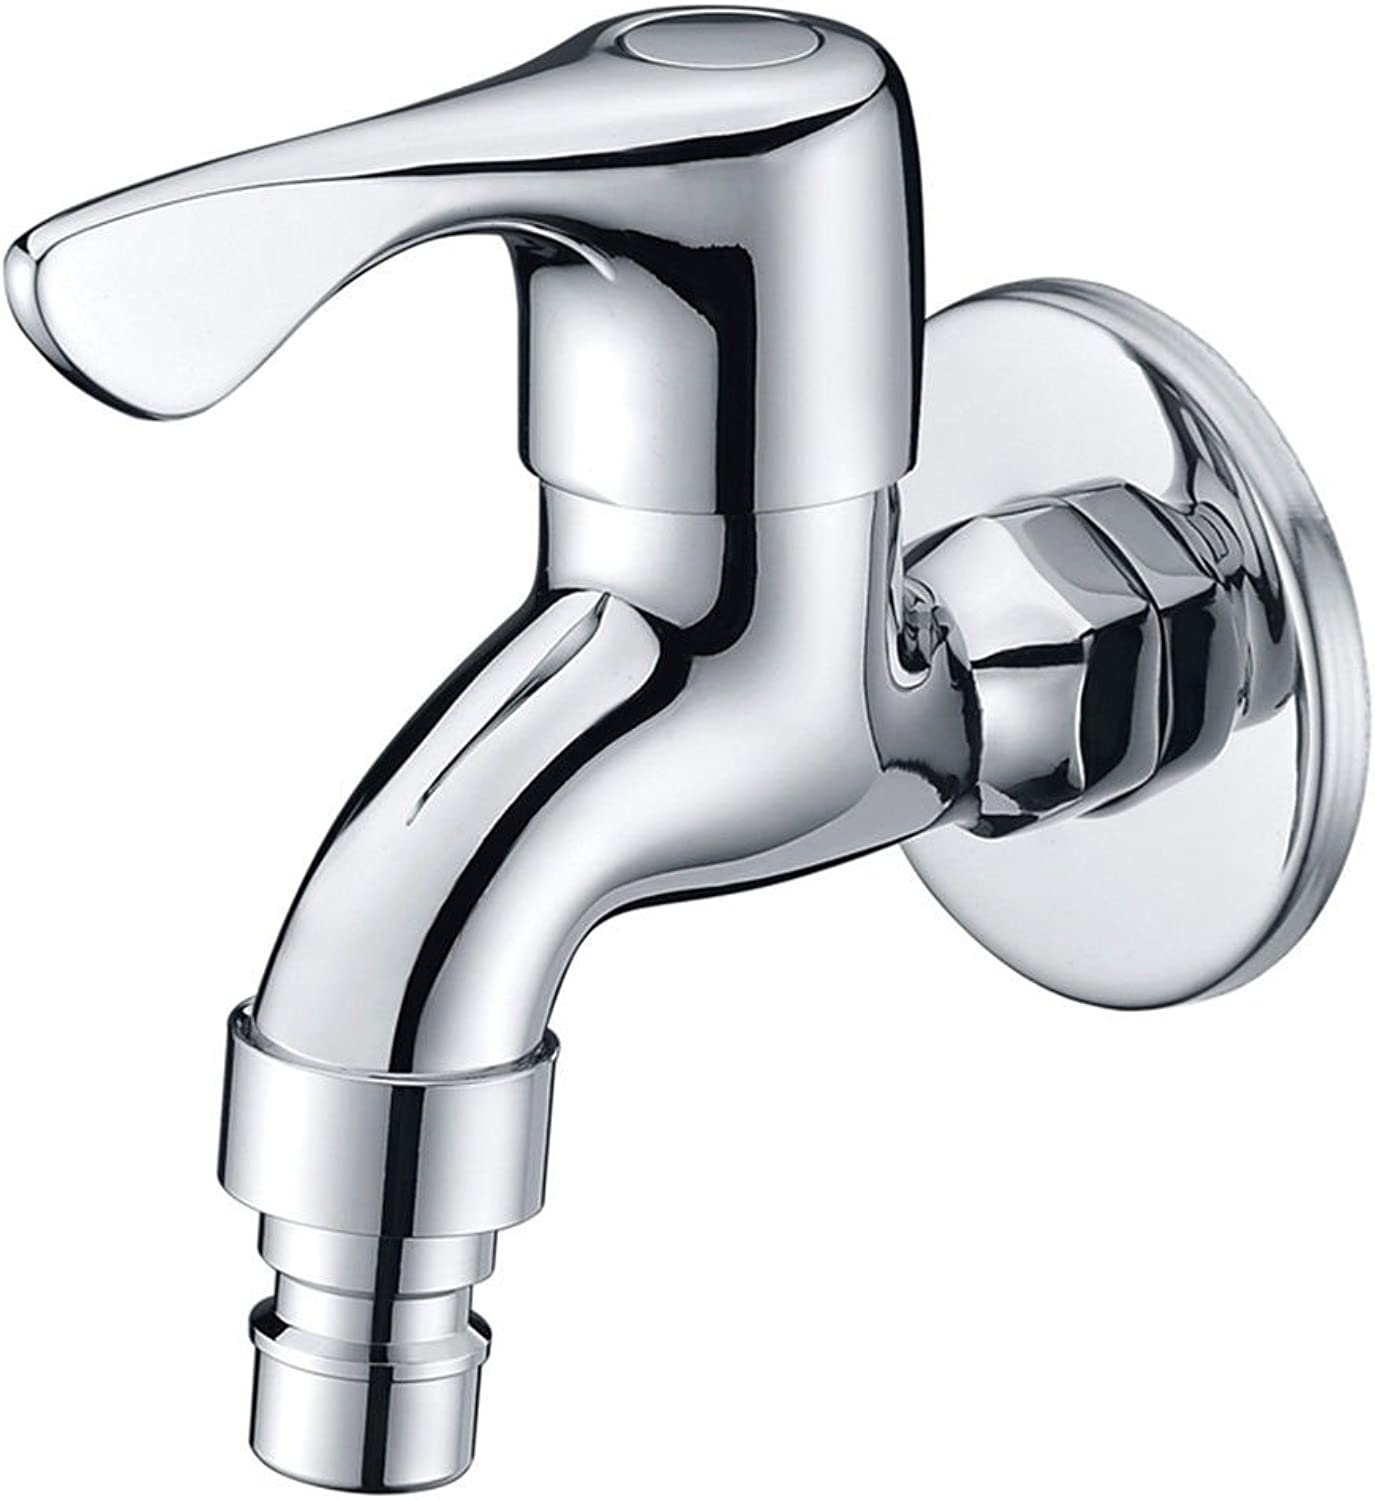 Lpophy Bathroom Sink Mixer Taps Faucet Bath Waterfall Cold and Hot Water Tap for Washroom Bathroom and Kitchen All Copper Single Cold Water Nozzle 4 Points